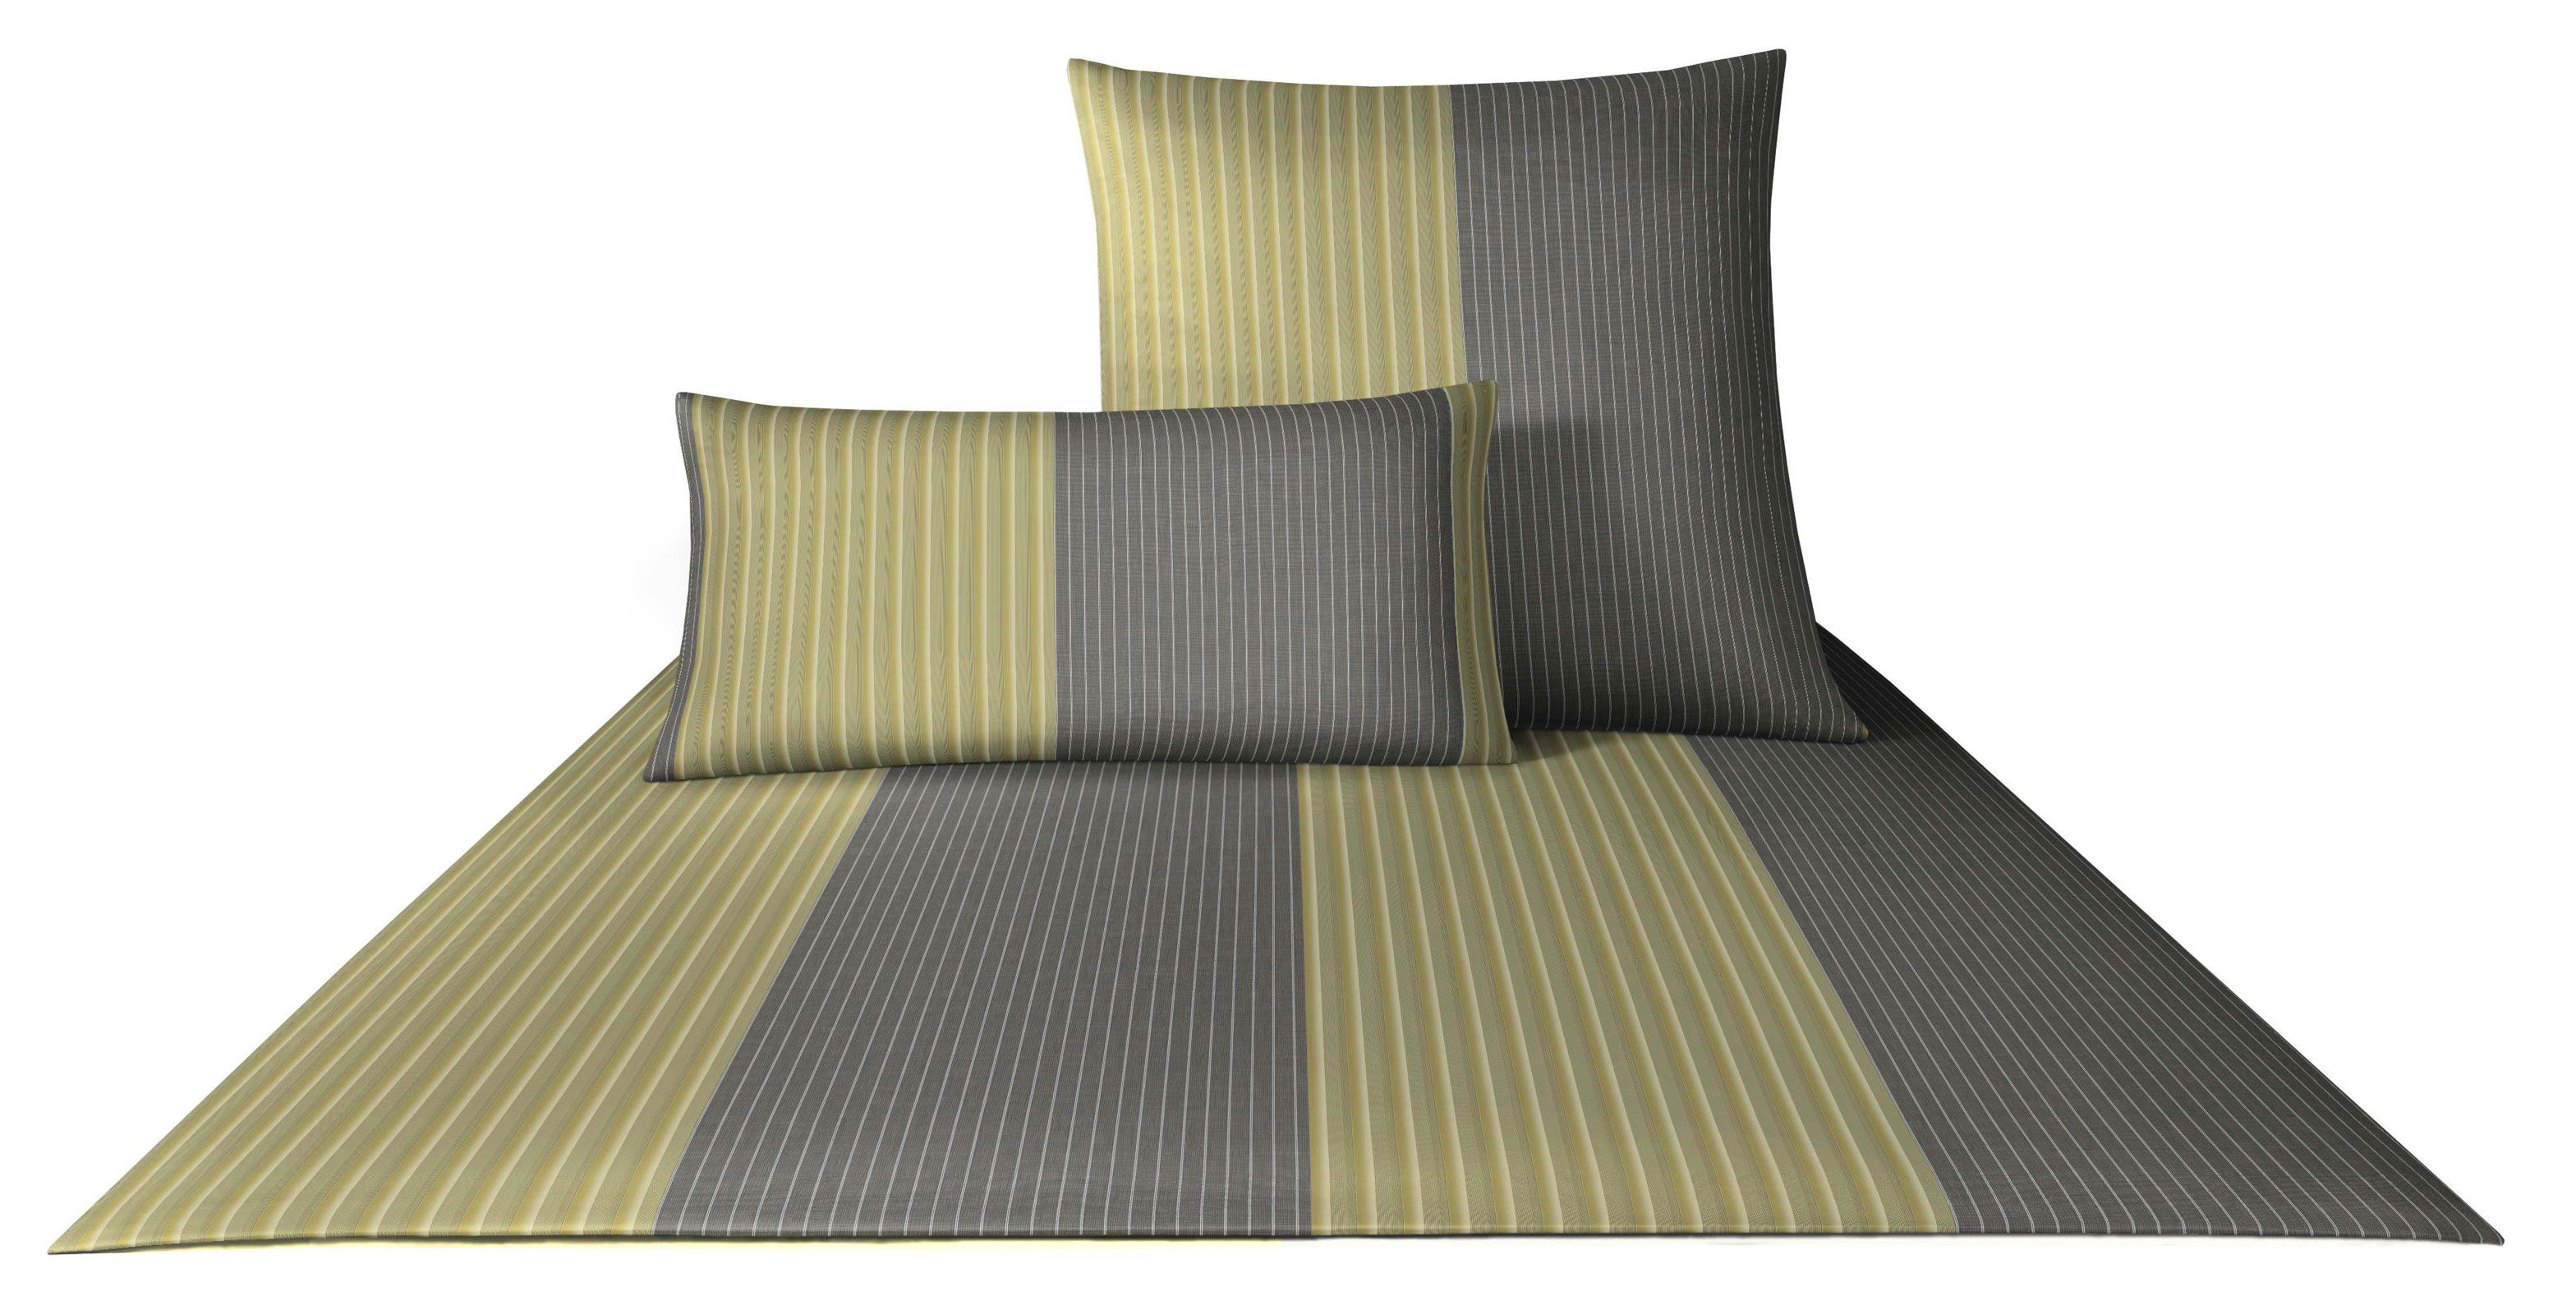 Bettwäsche - 4tlg. Joop Mako Satin Bettwäsche Double Stripes 155x220 4054 4  - Onlineshop PremiumShop321